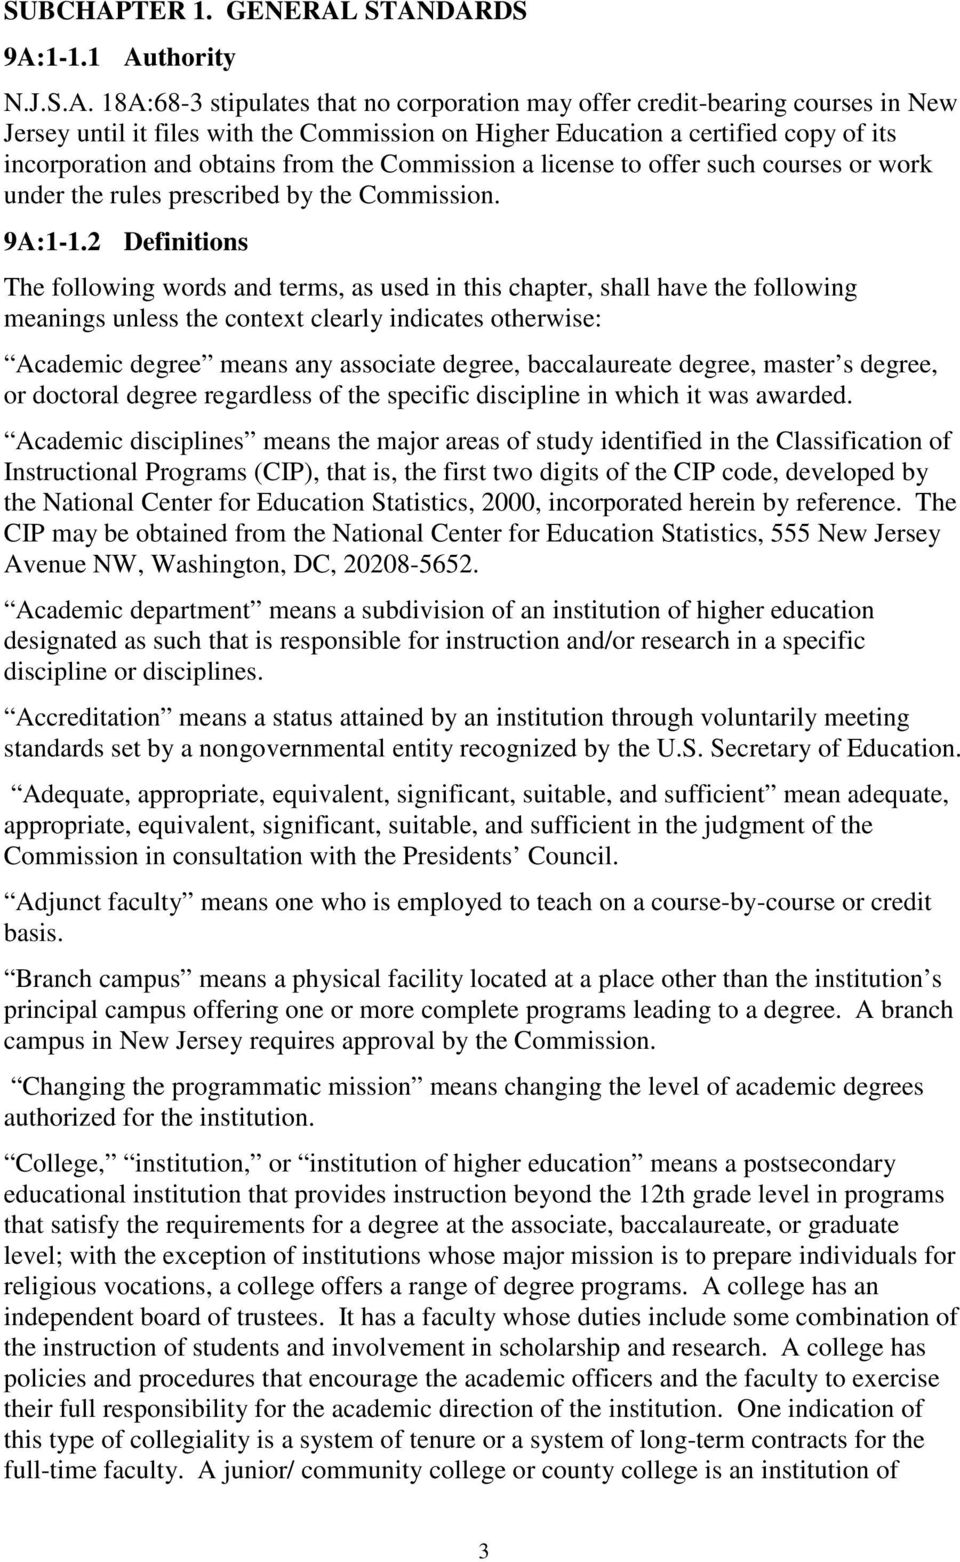 STANDARDS 9A:1-1.1 Authority N.J.S.A. 18A:68-3 stipulates that no corporation may offer credit-bearing courses in New Jersey until it files with the Commission on Higher Education a certified copy of